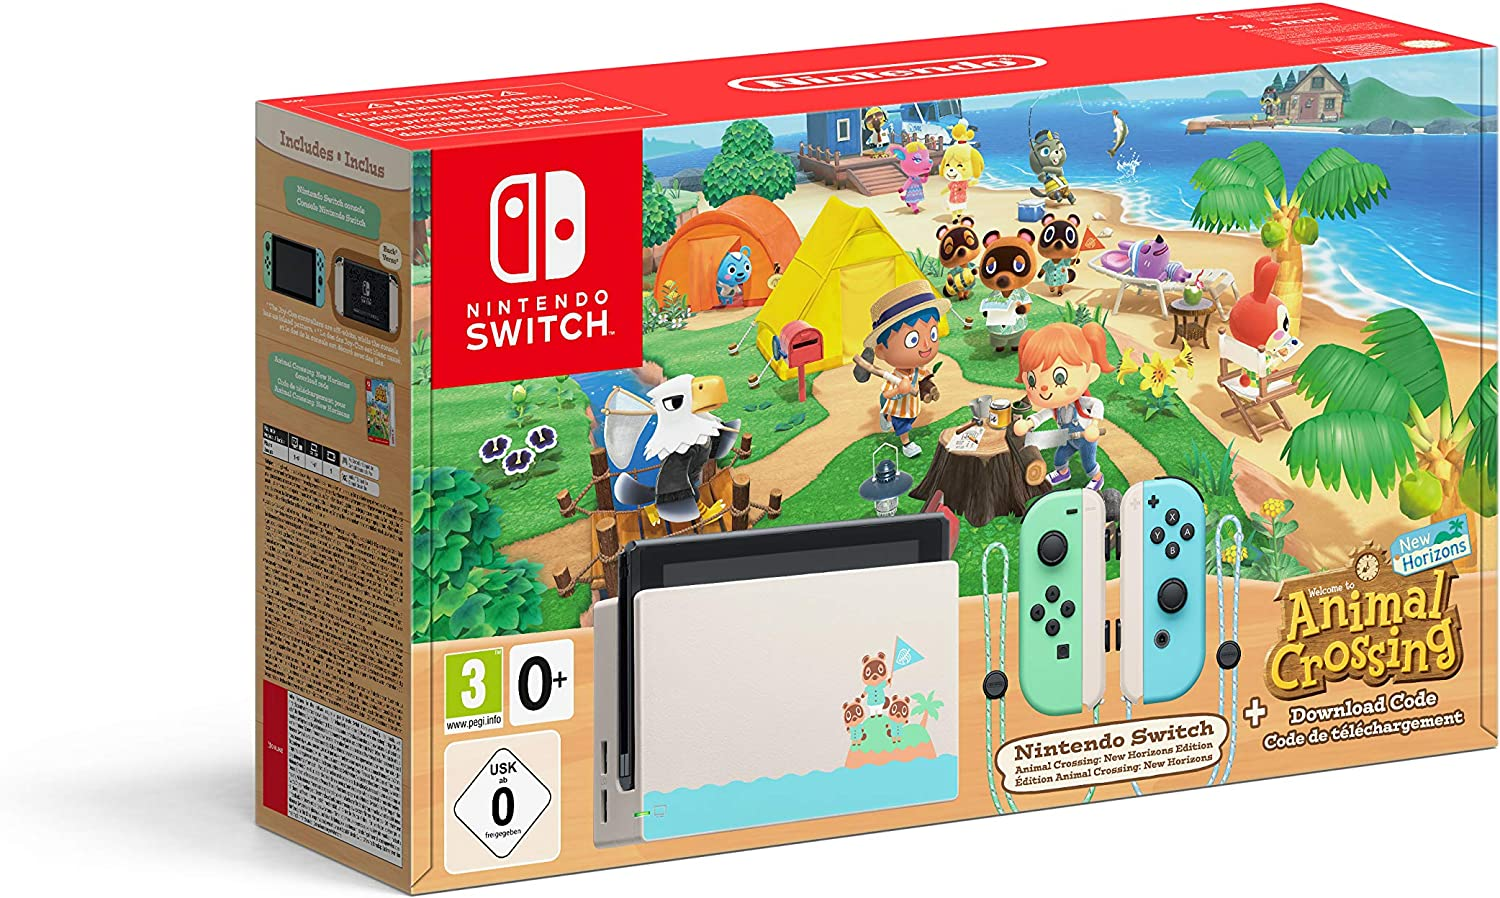 Animal Crossing -themed Switch